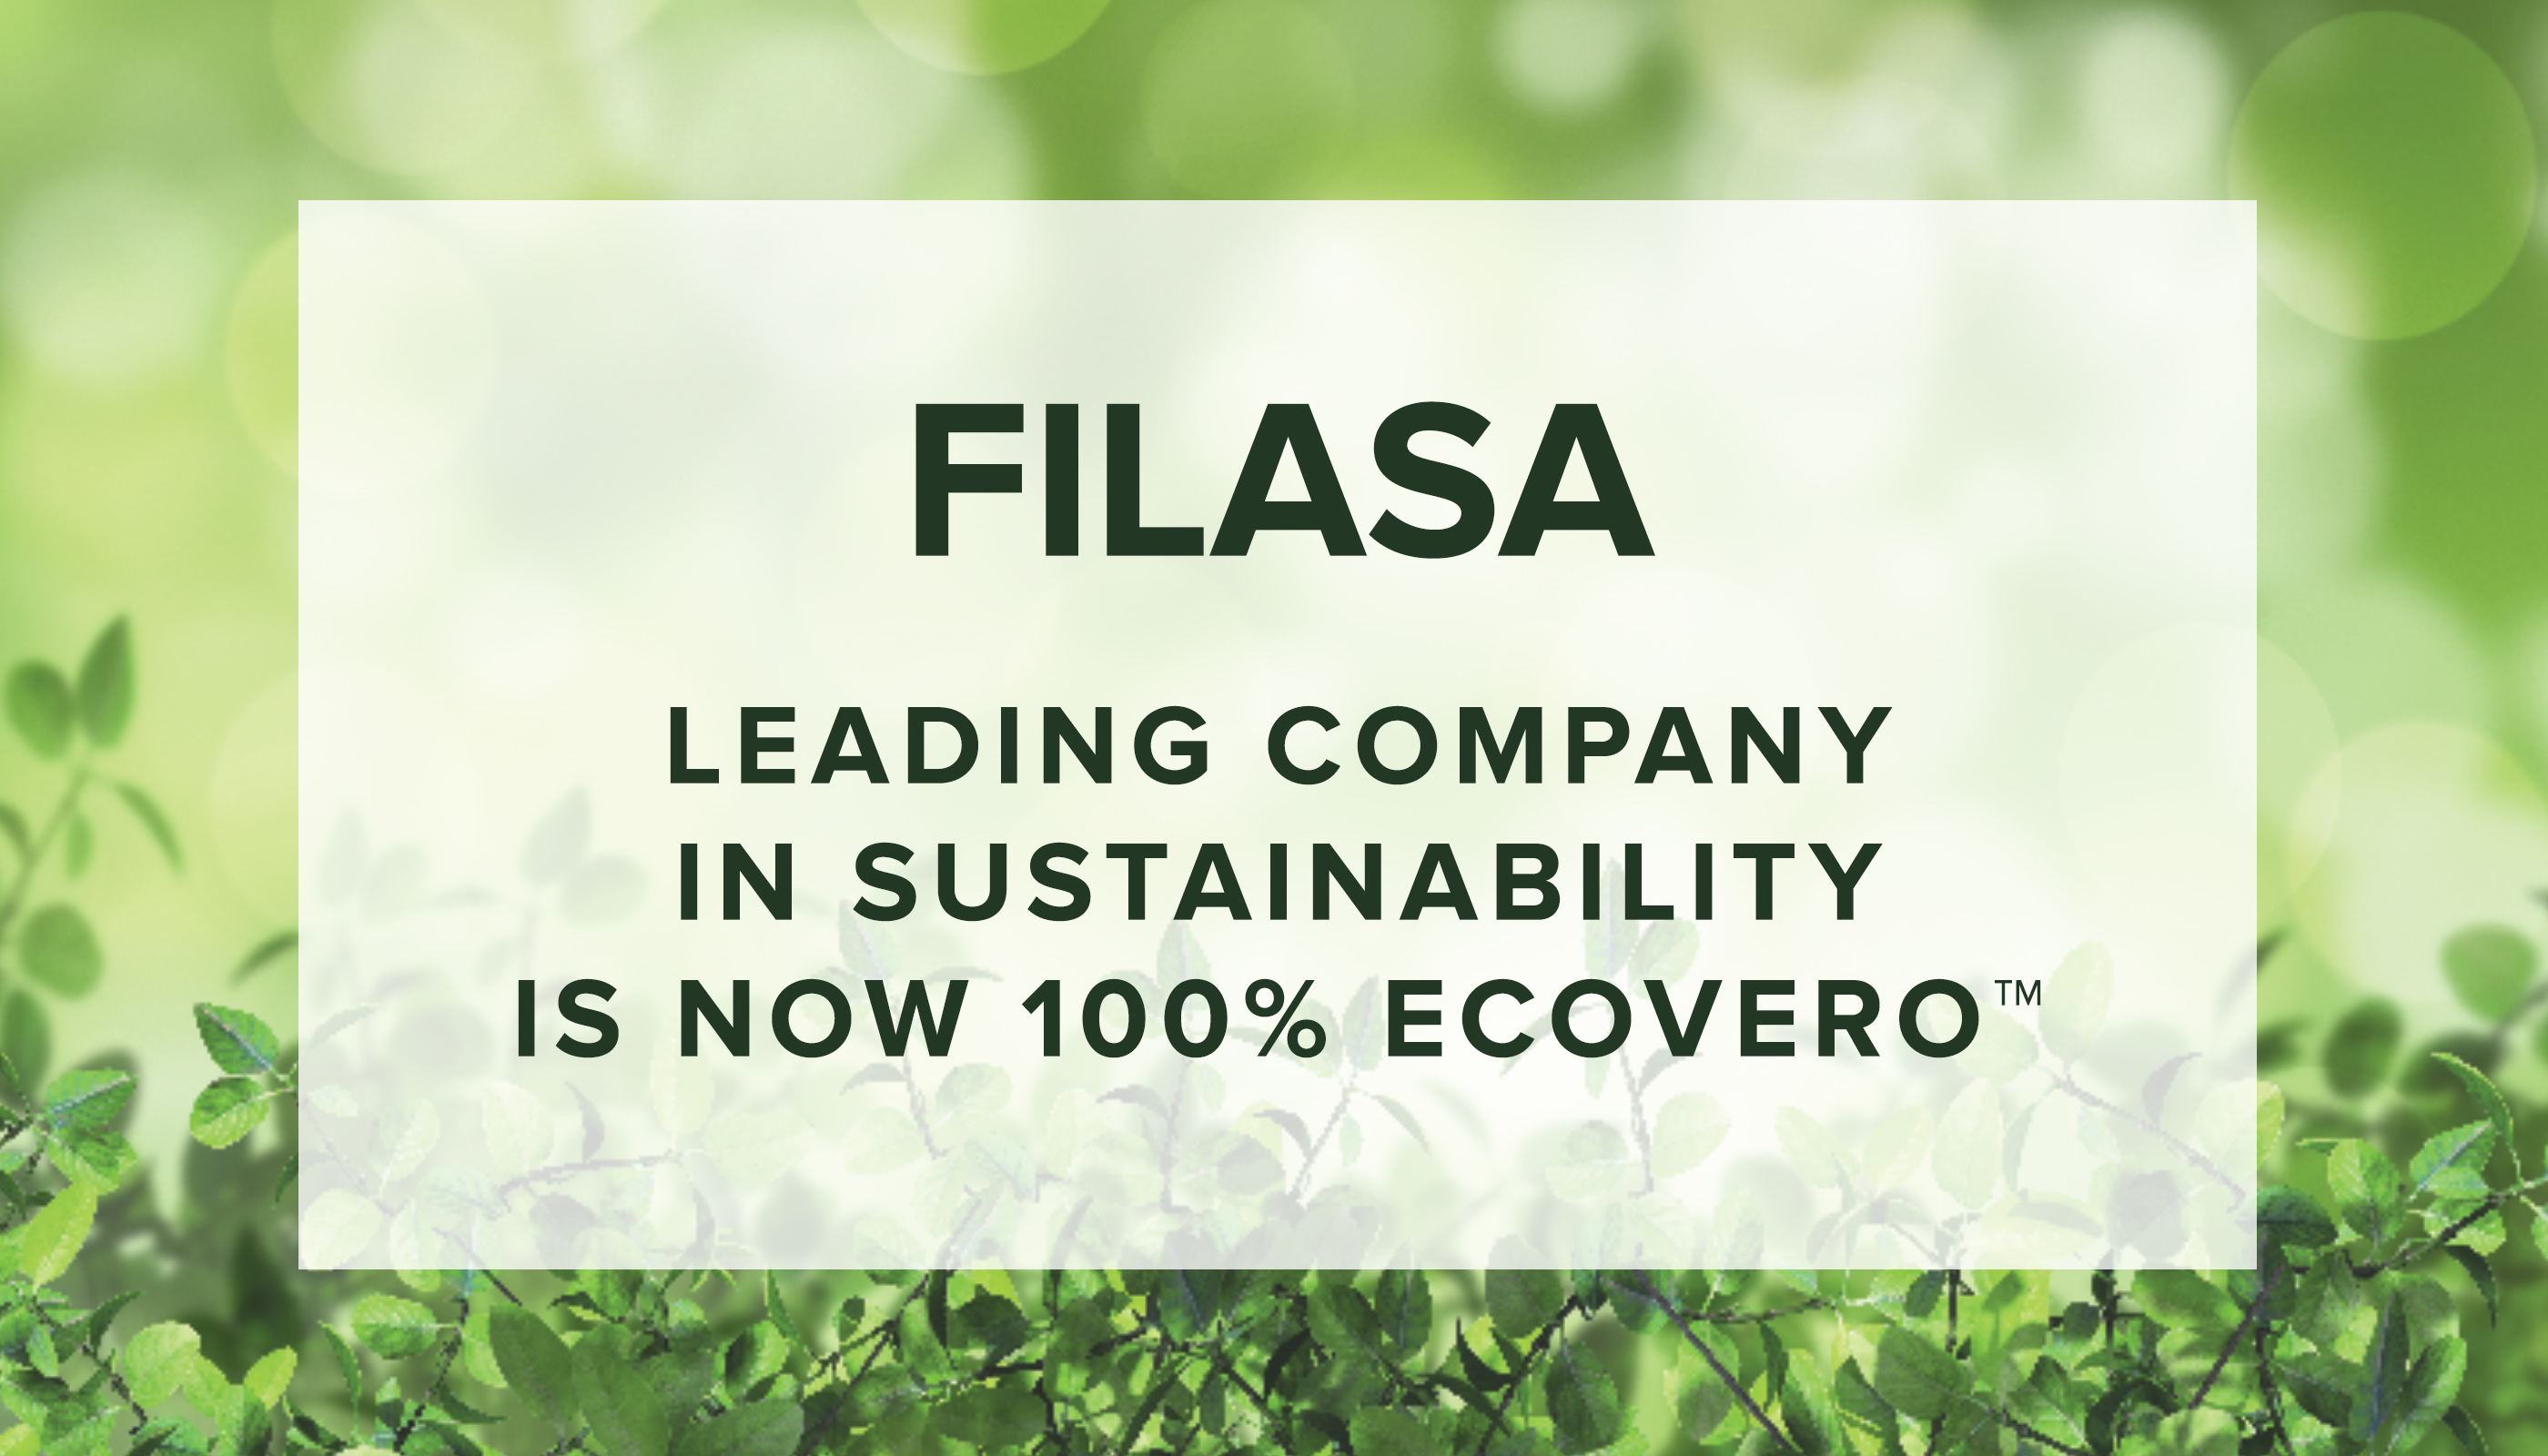 FILASA leading company in sustainability is now 100% EcoVero™